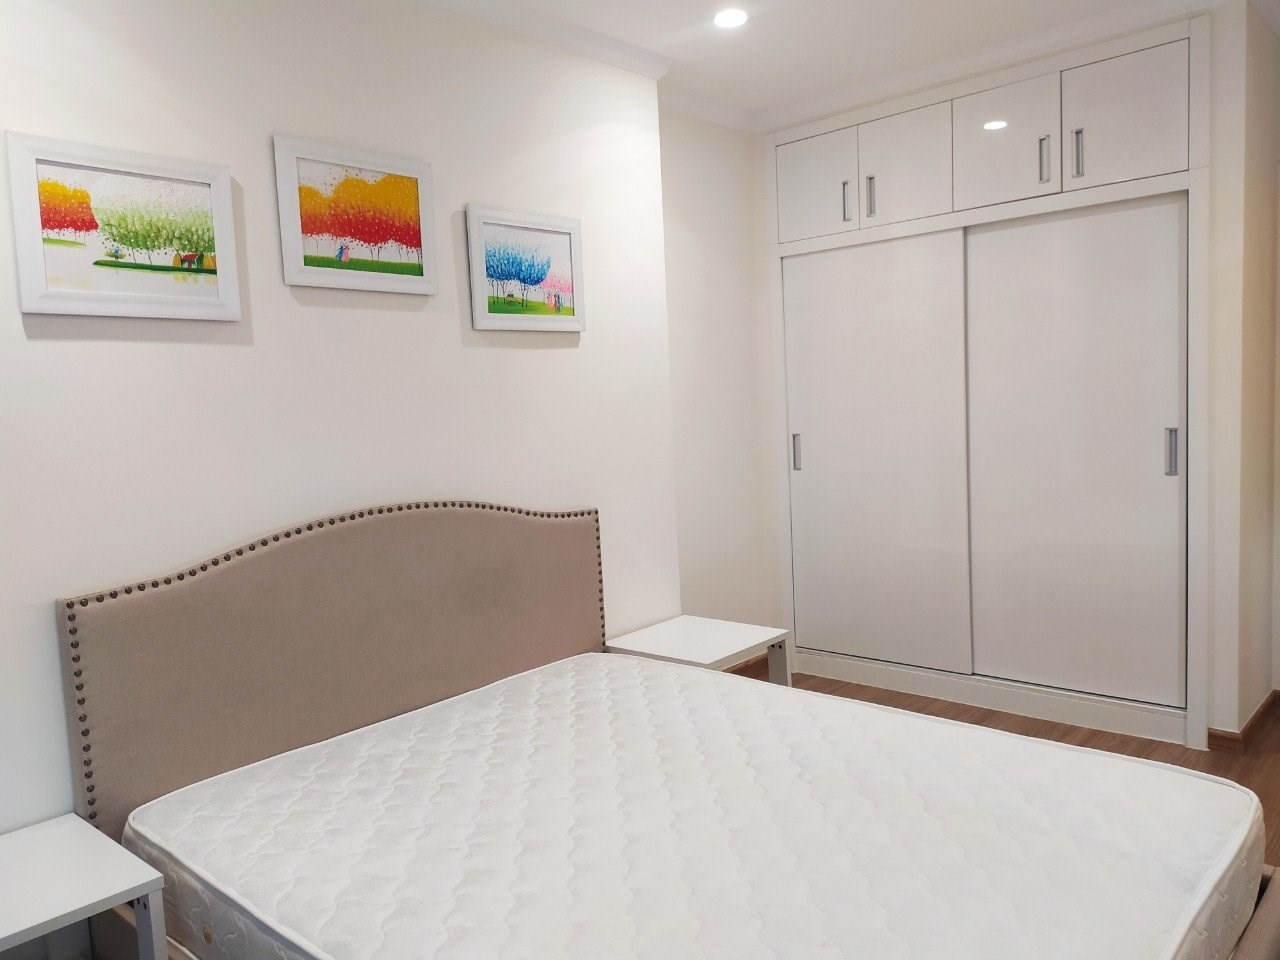 VCP98043 - Vinhomes Central Park Apartments For Rent & Sale In Ho Chi Minh City